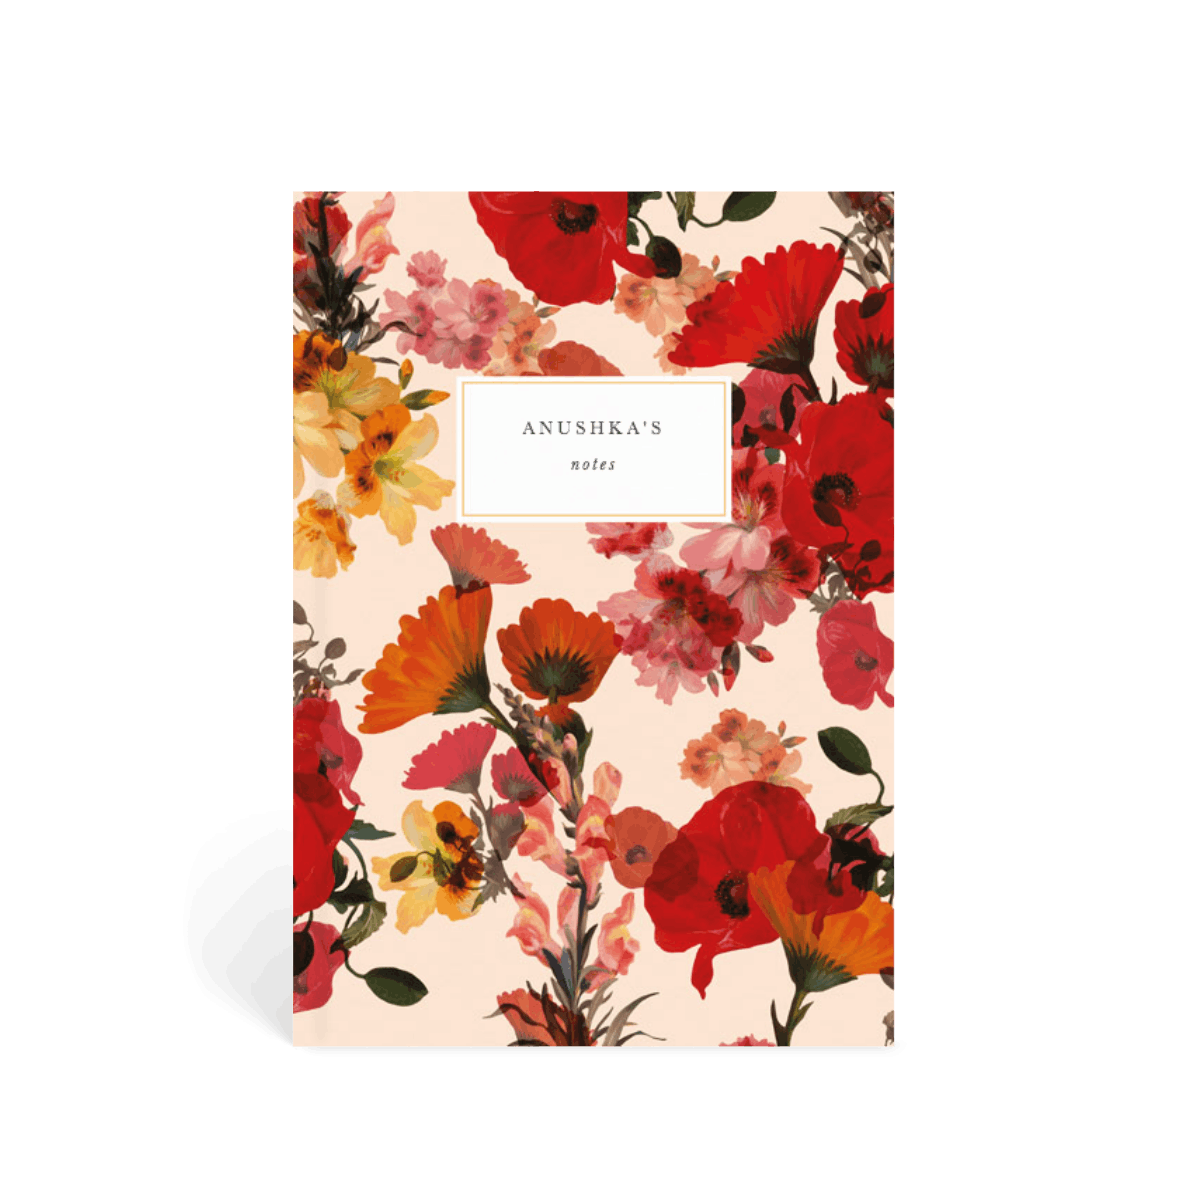 Https%3a%2f%2fwww.papier.com%2fproduct image%2f46350%2f25%2fcordelia floral 11427 front 1539765603.png?ixlib=rb 1.1